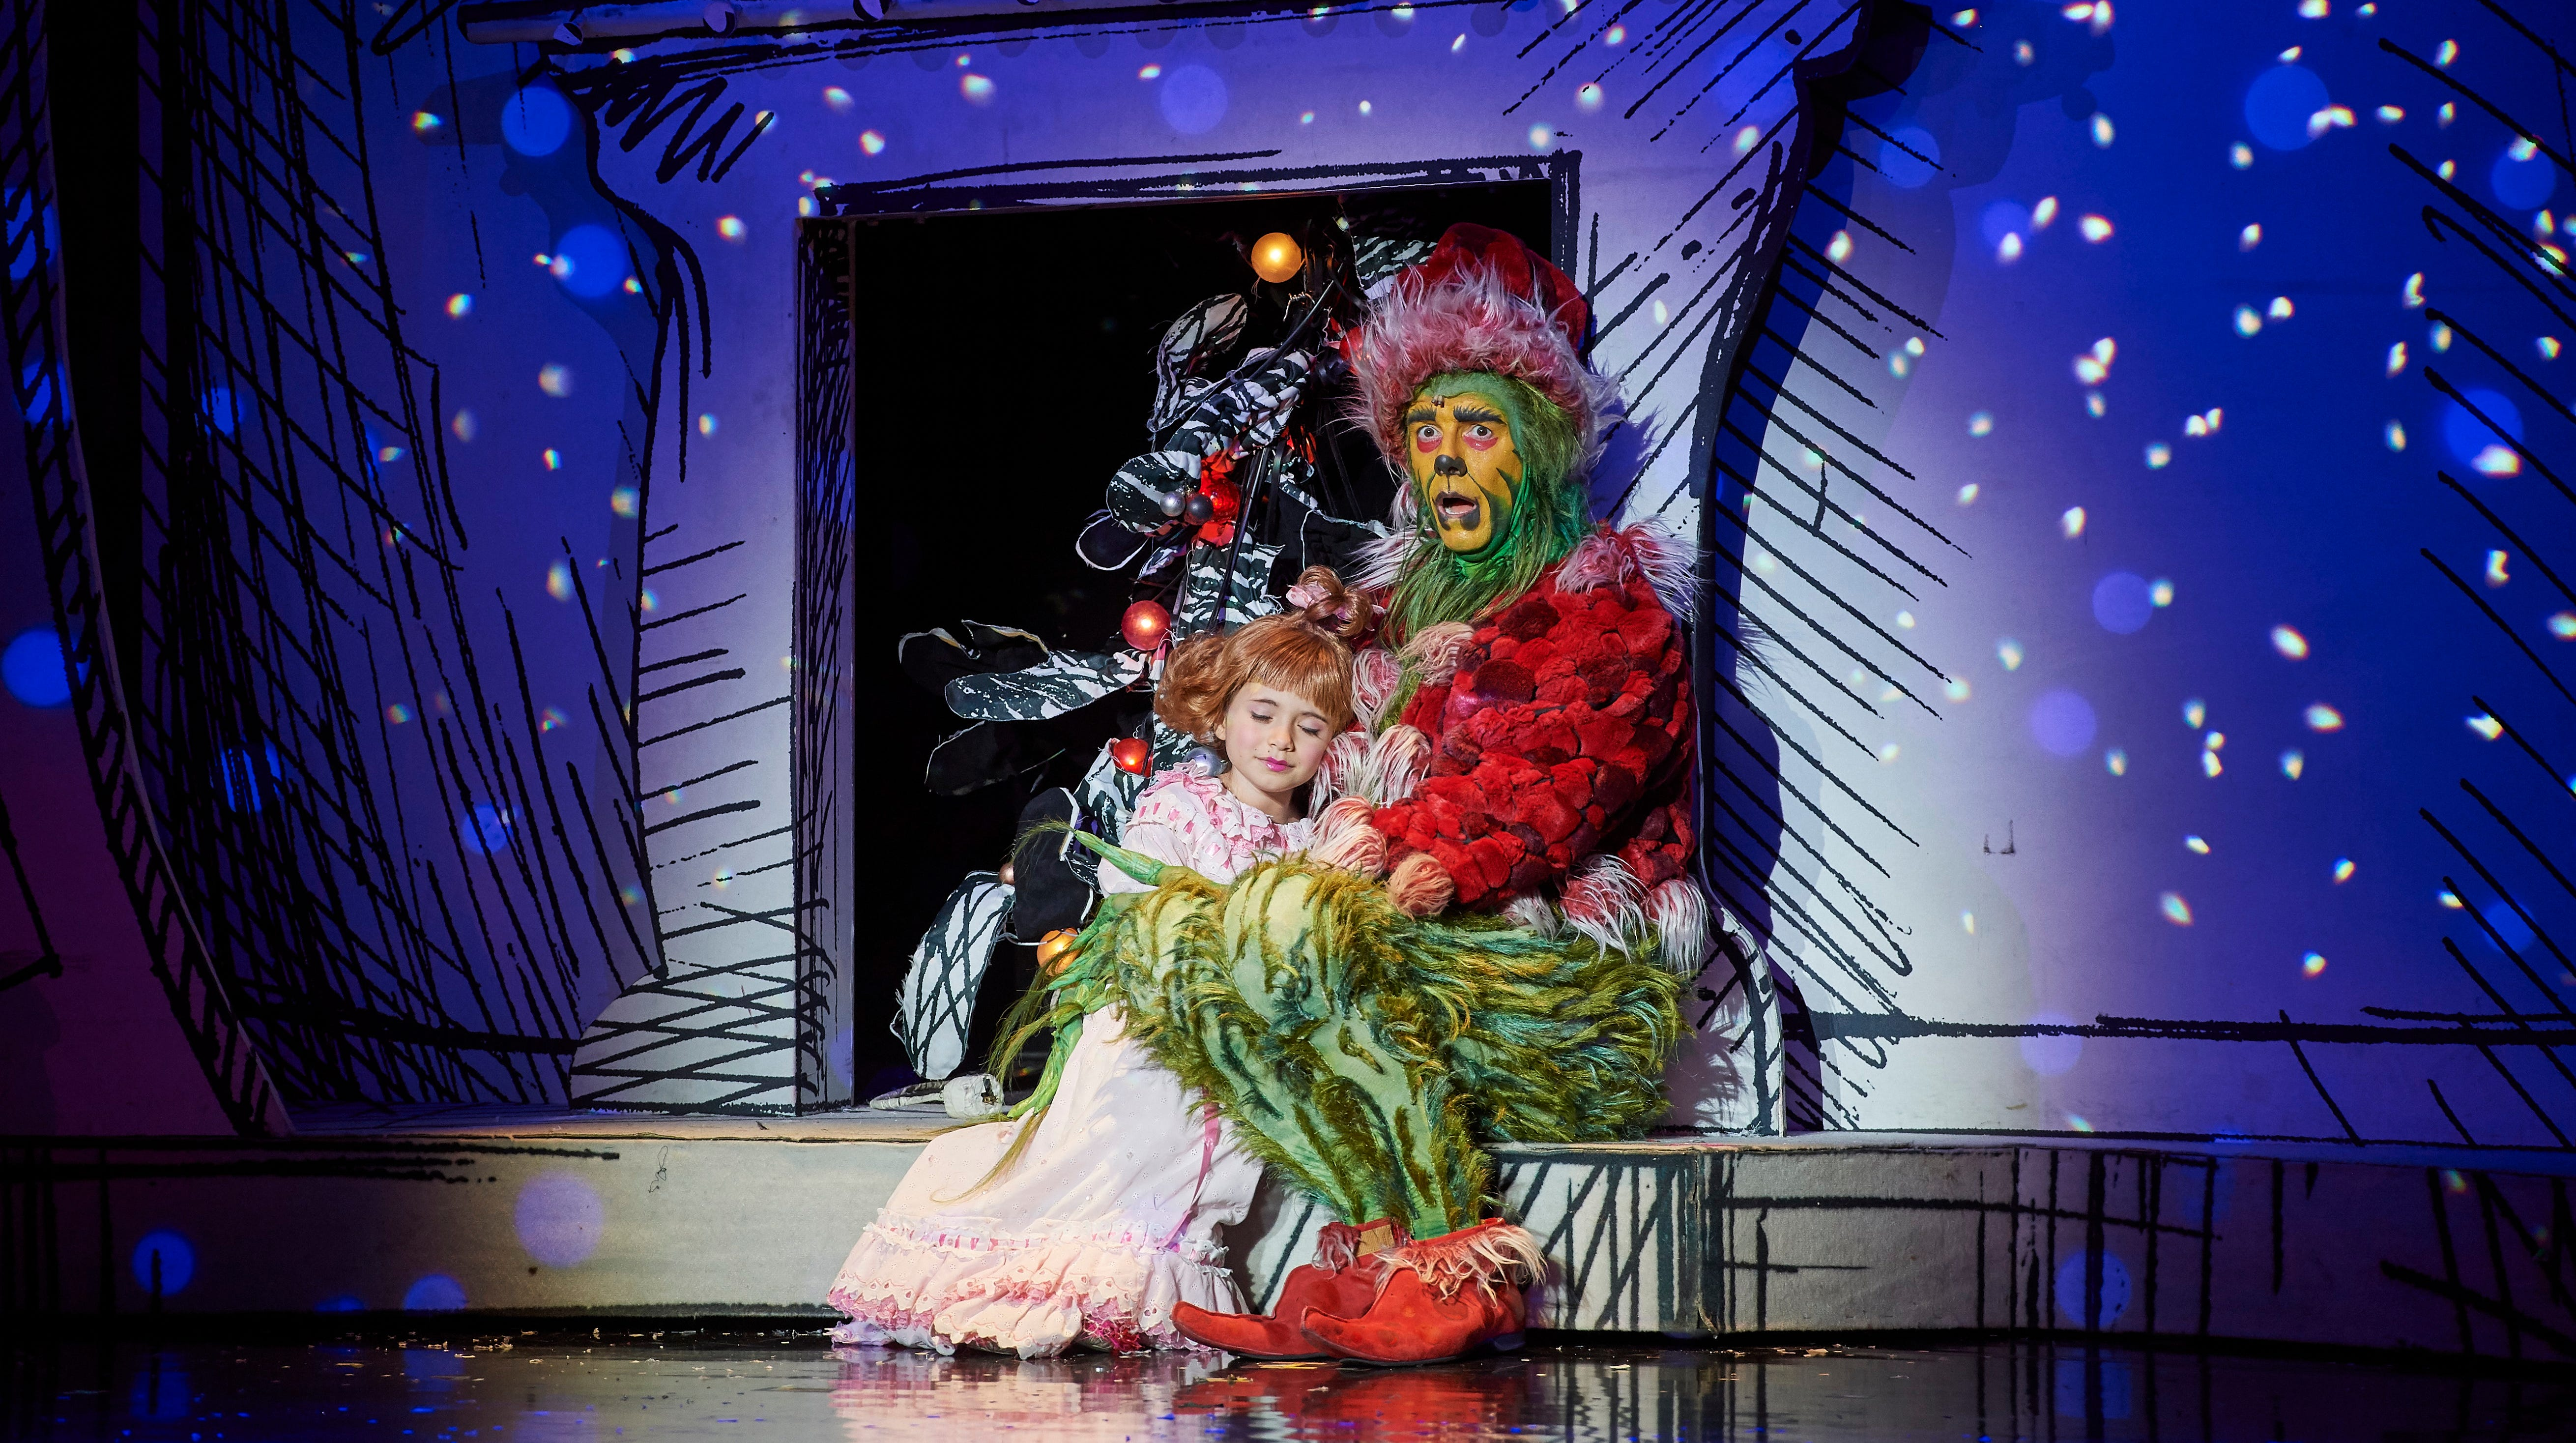 The Grinch actually loves Christmas - here's why